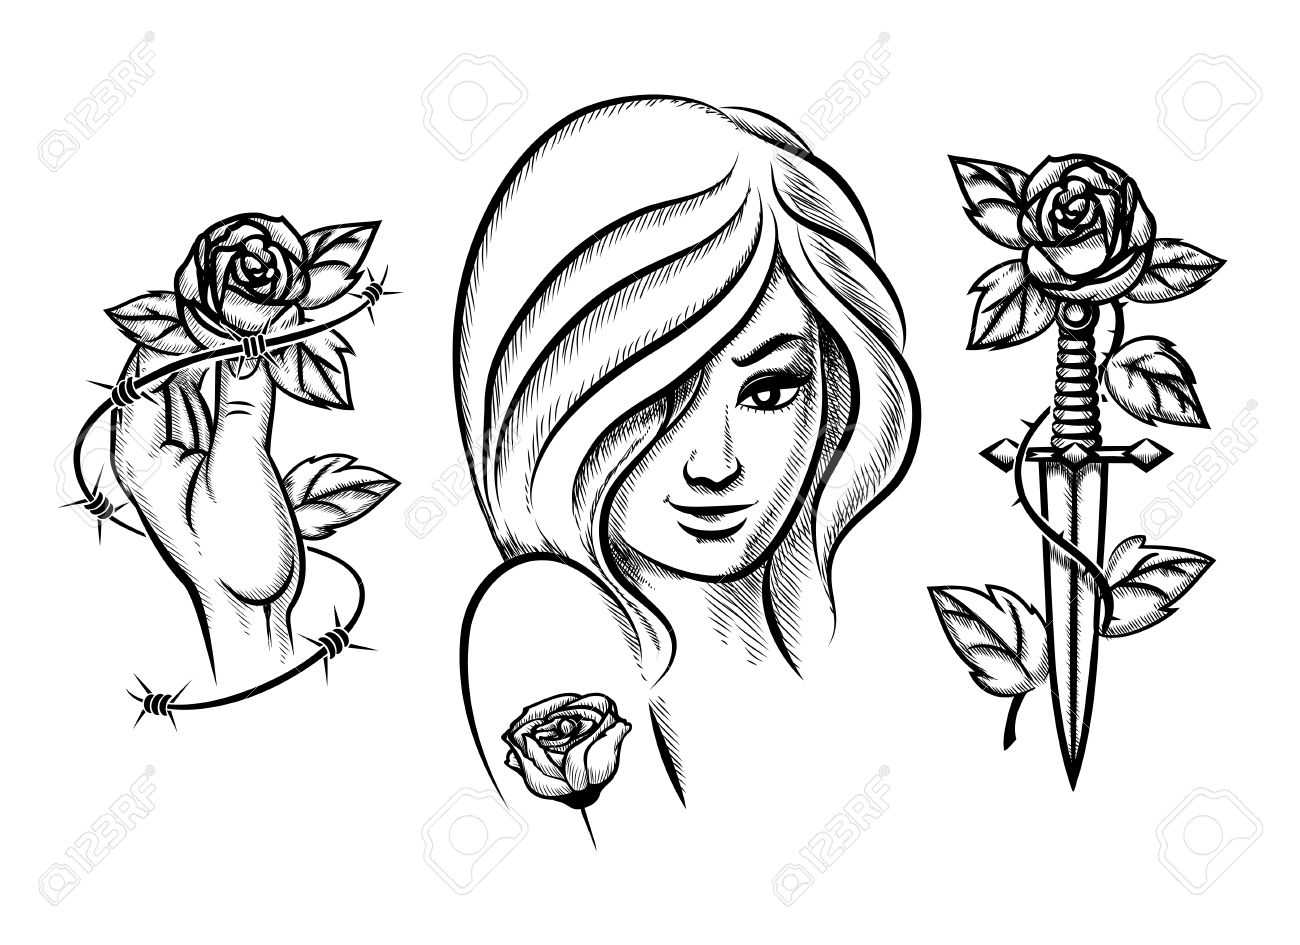 Tattoos. Beauty Girl, Knife, Rose And Barbed Wire Royalty Free ...